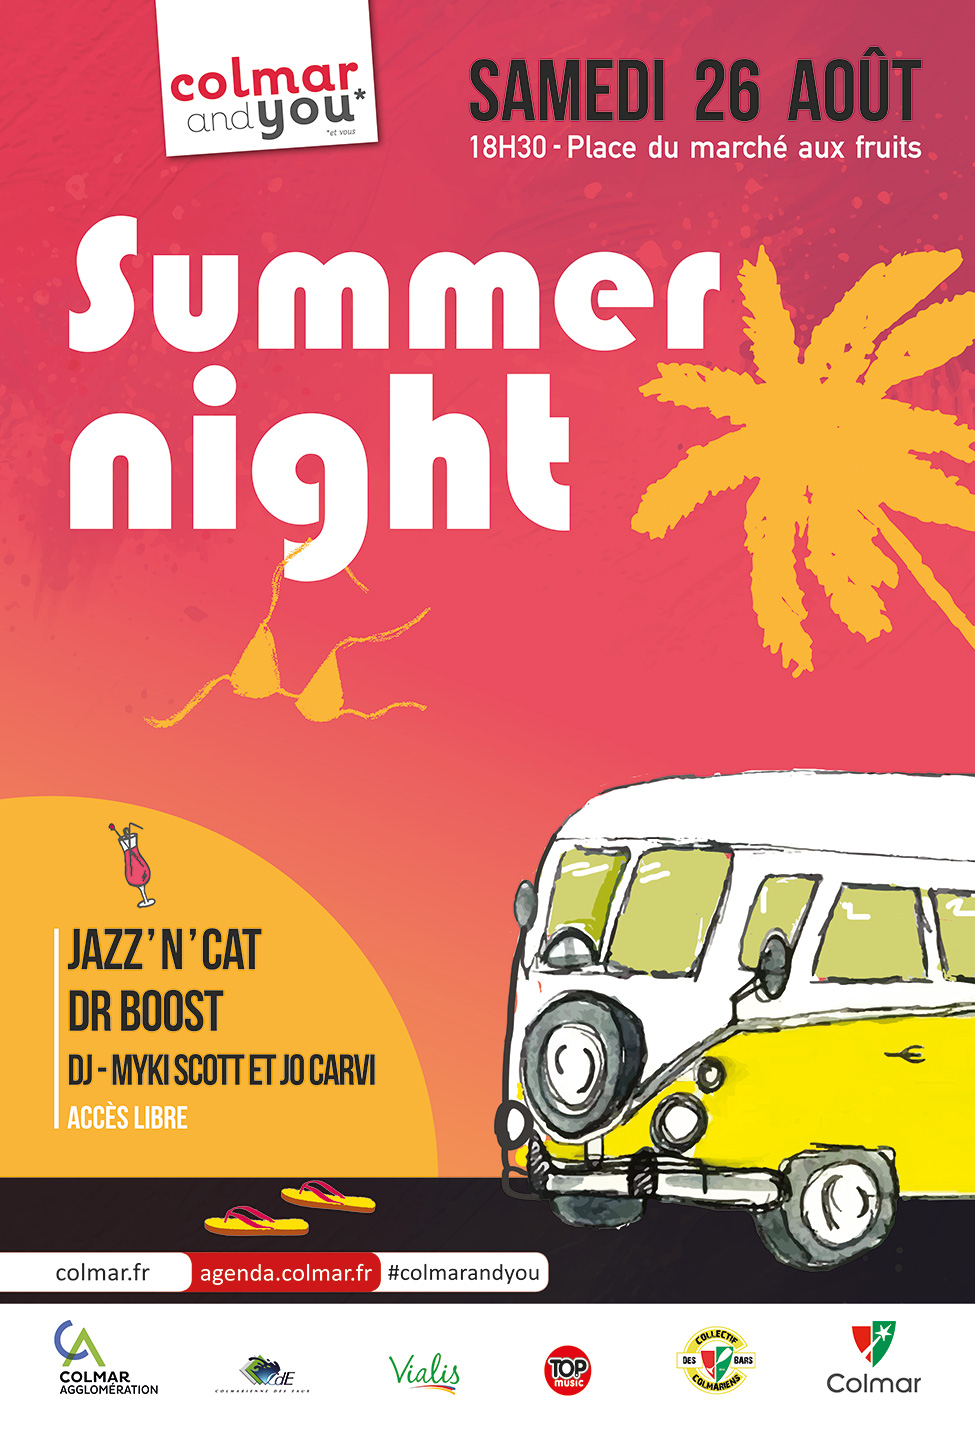 Affiche de la Summer night 2017 de Colmar